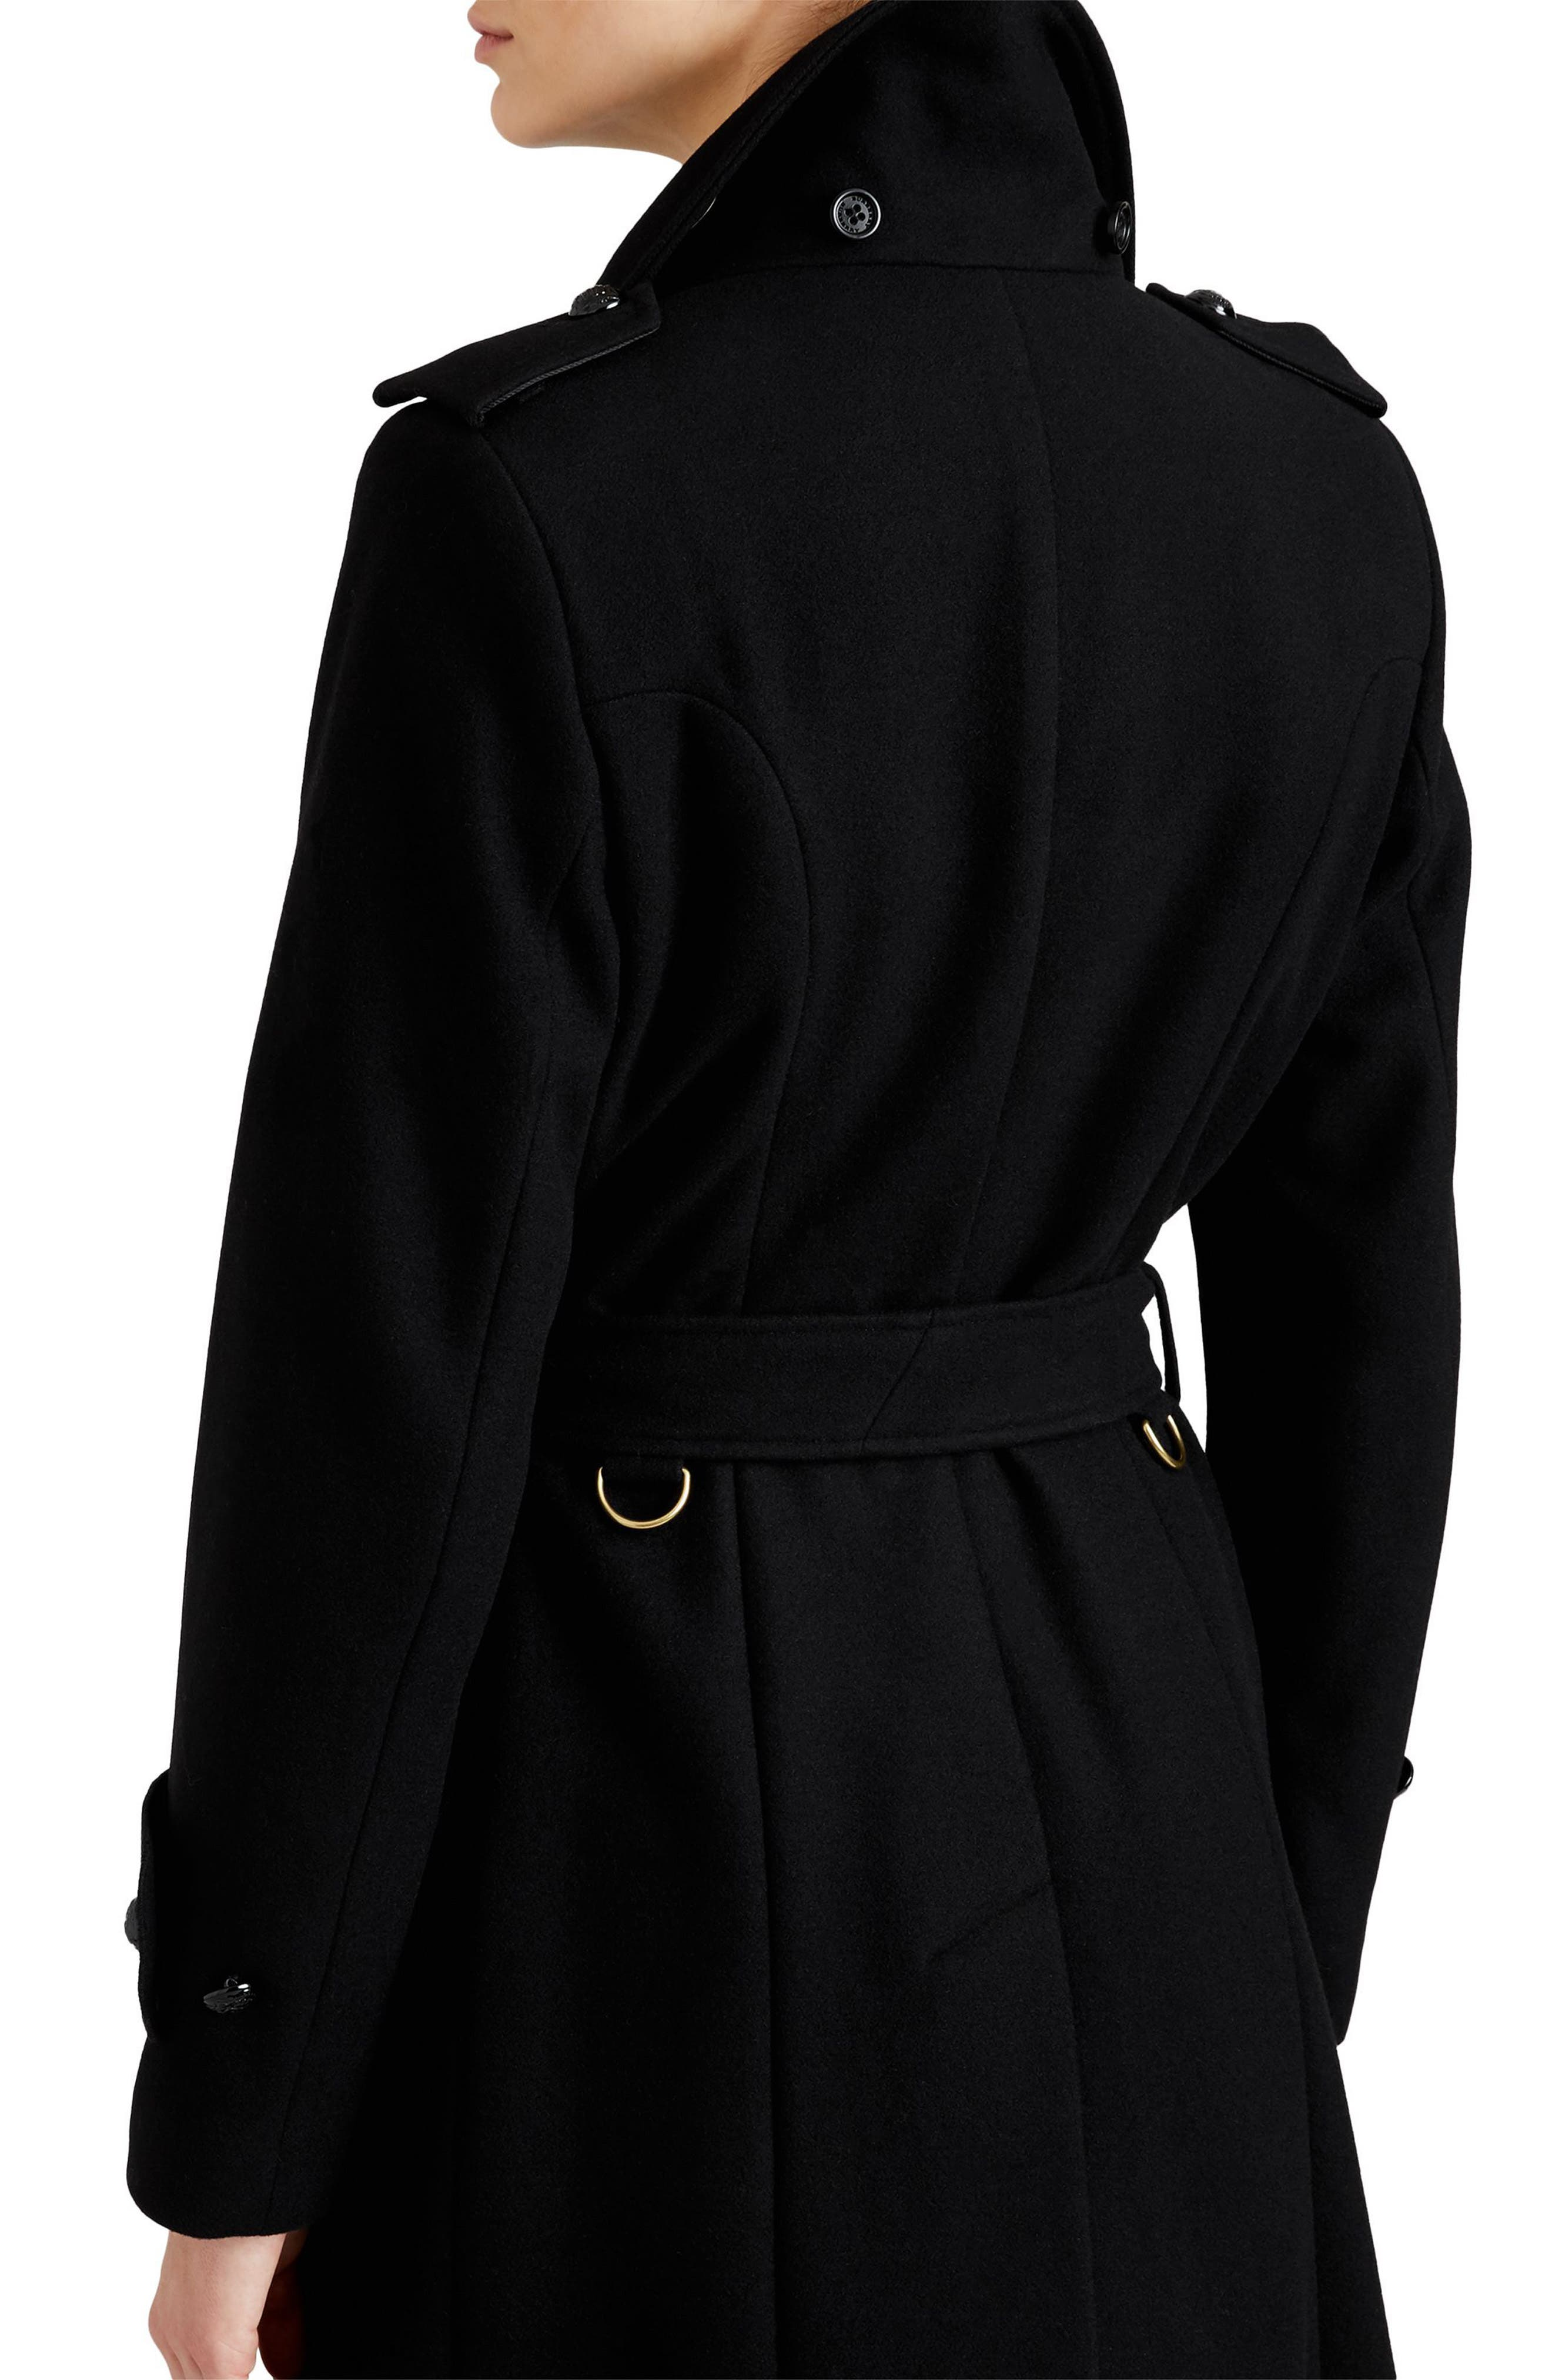 Claybrooke Wool Blend Coat with Removable Genuine Fox Fur Trim,                             Alternate thumbnail 2, color,                             001